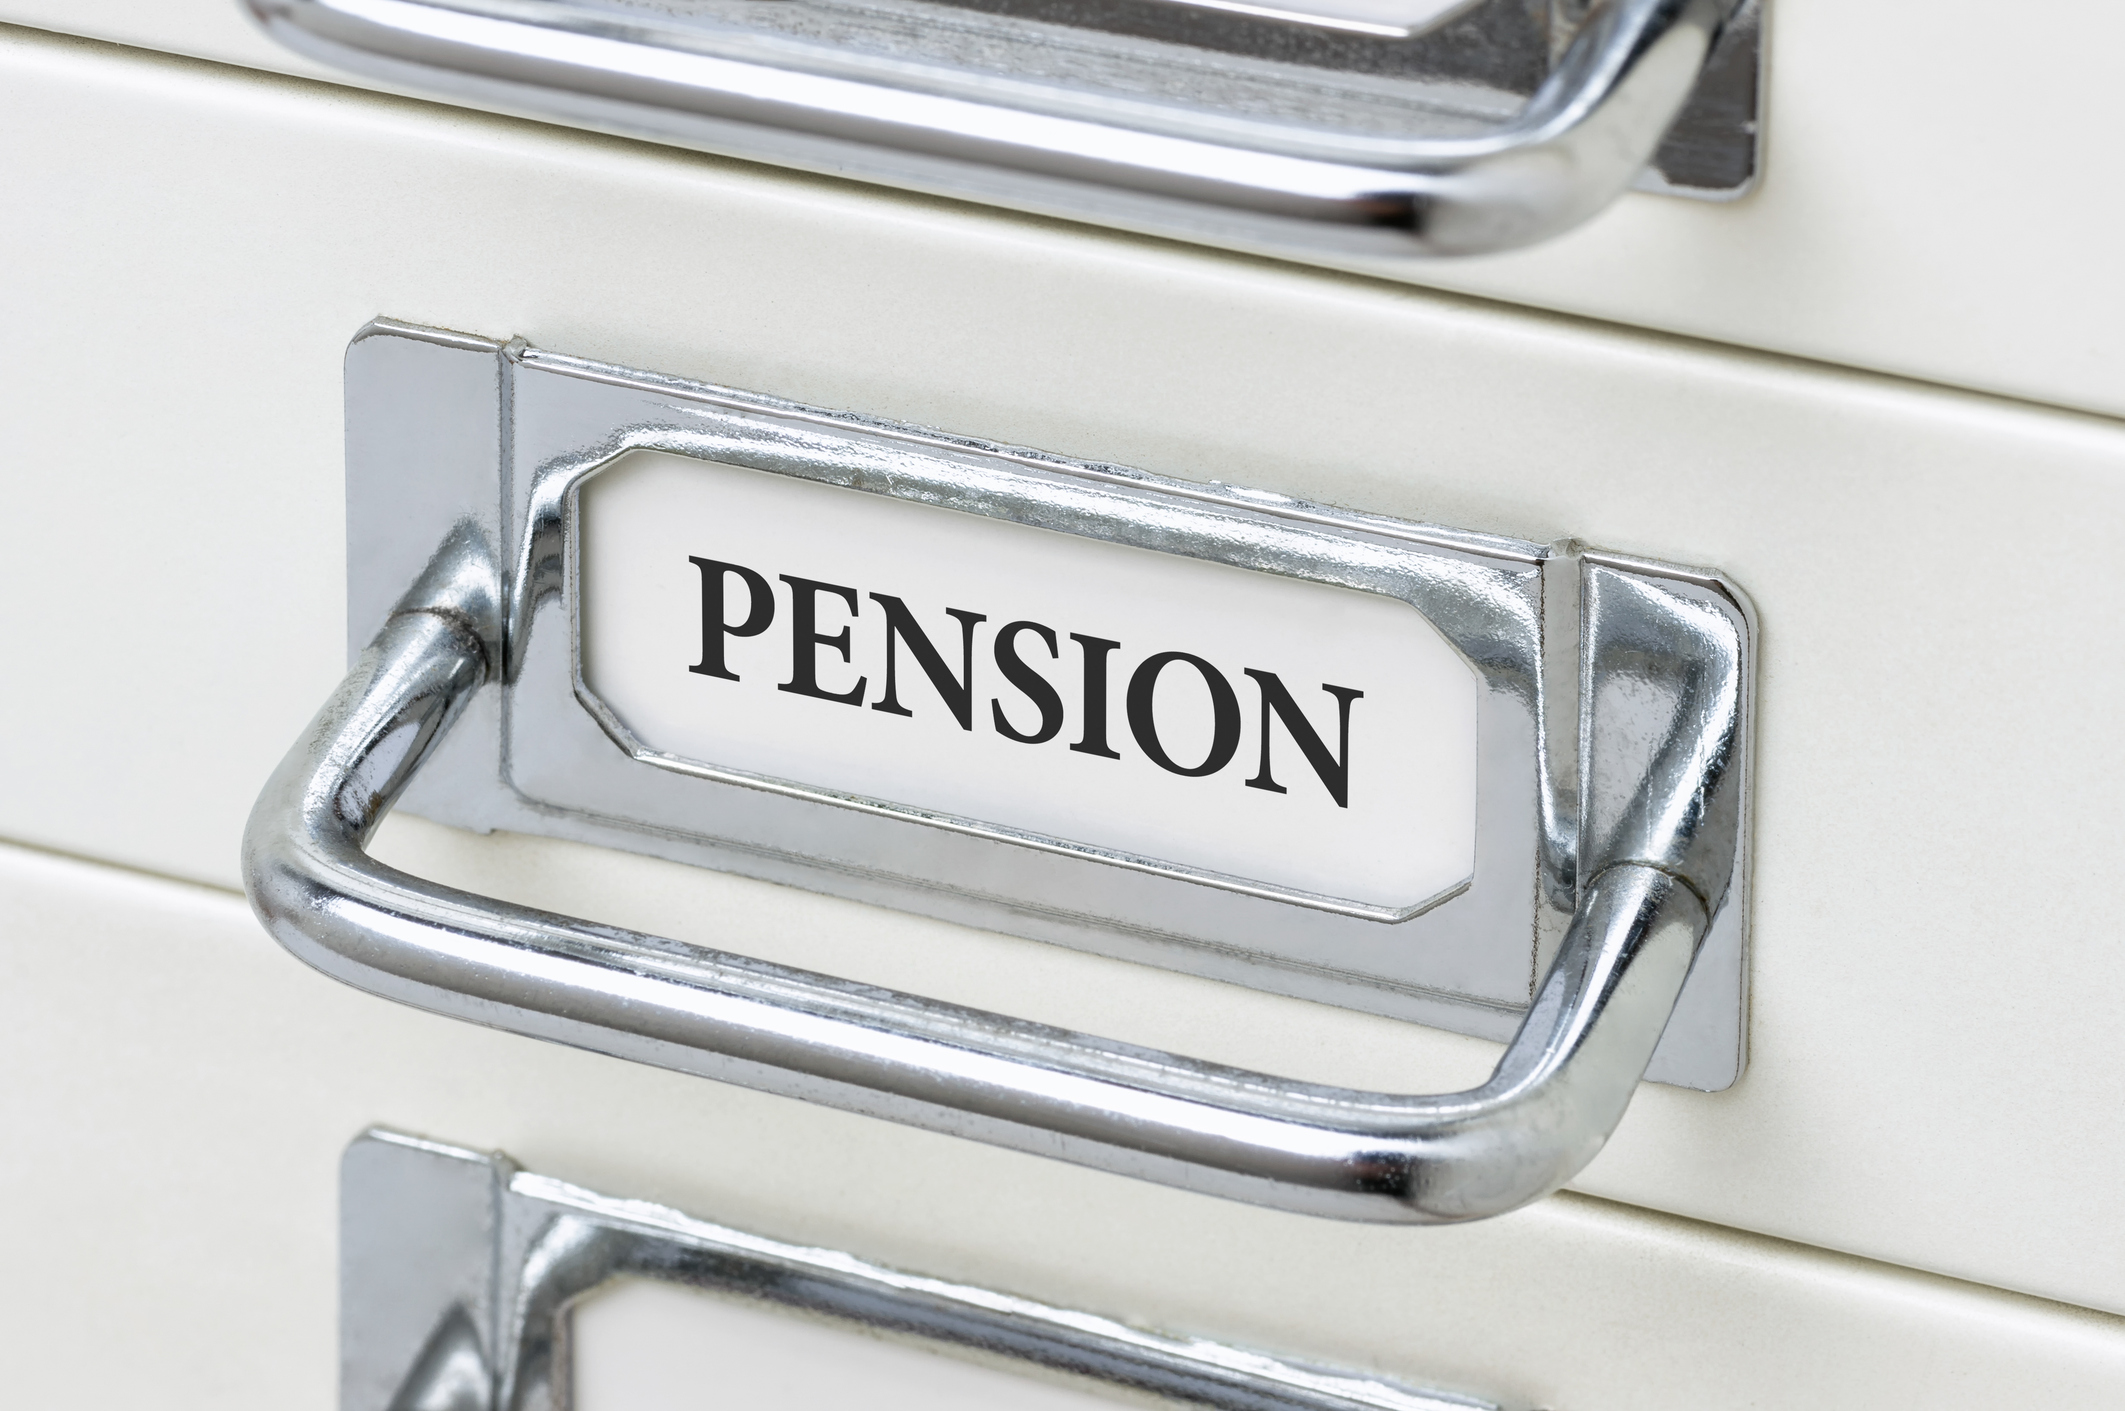 Pensions - .Whether you're ready to retire or just starting your first job, there's a lot you need to know about pensions.